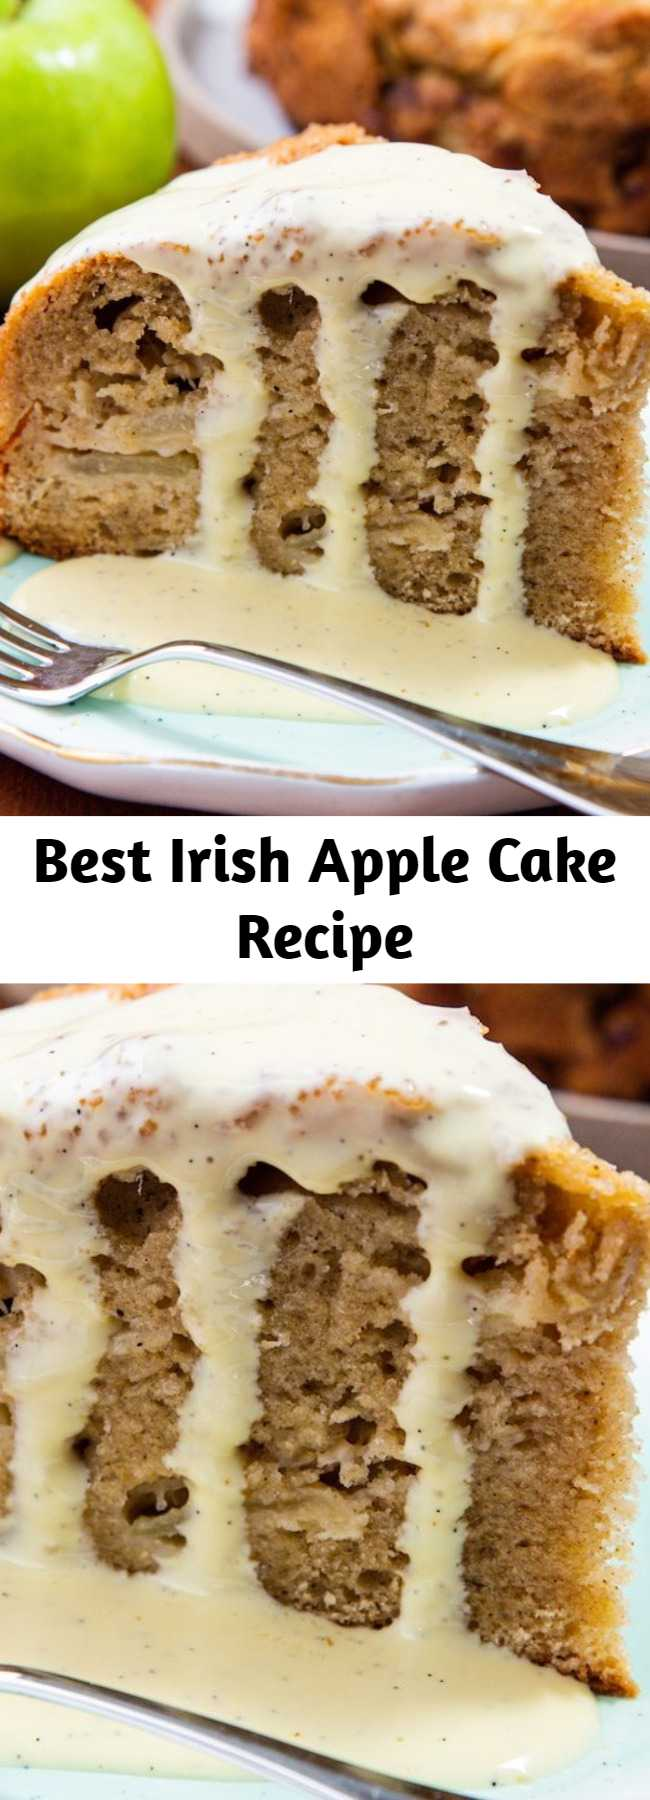 Best Irish Apple Cake Recipe - A classic cake boasting tons of apples, lots of warm spices, a crispy sugar topping, and a rich vanilla custard sauce. This tender cake is jam-packed with apples, which is why we think it's perfectly appropriate to eat a slice for breakfast. 😉